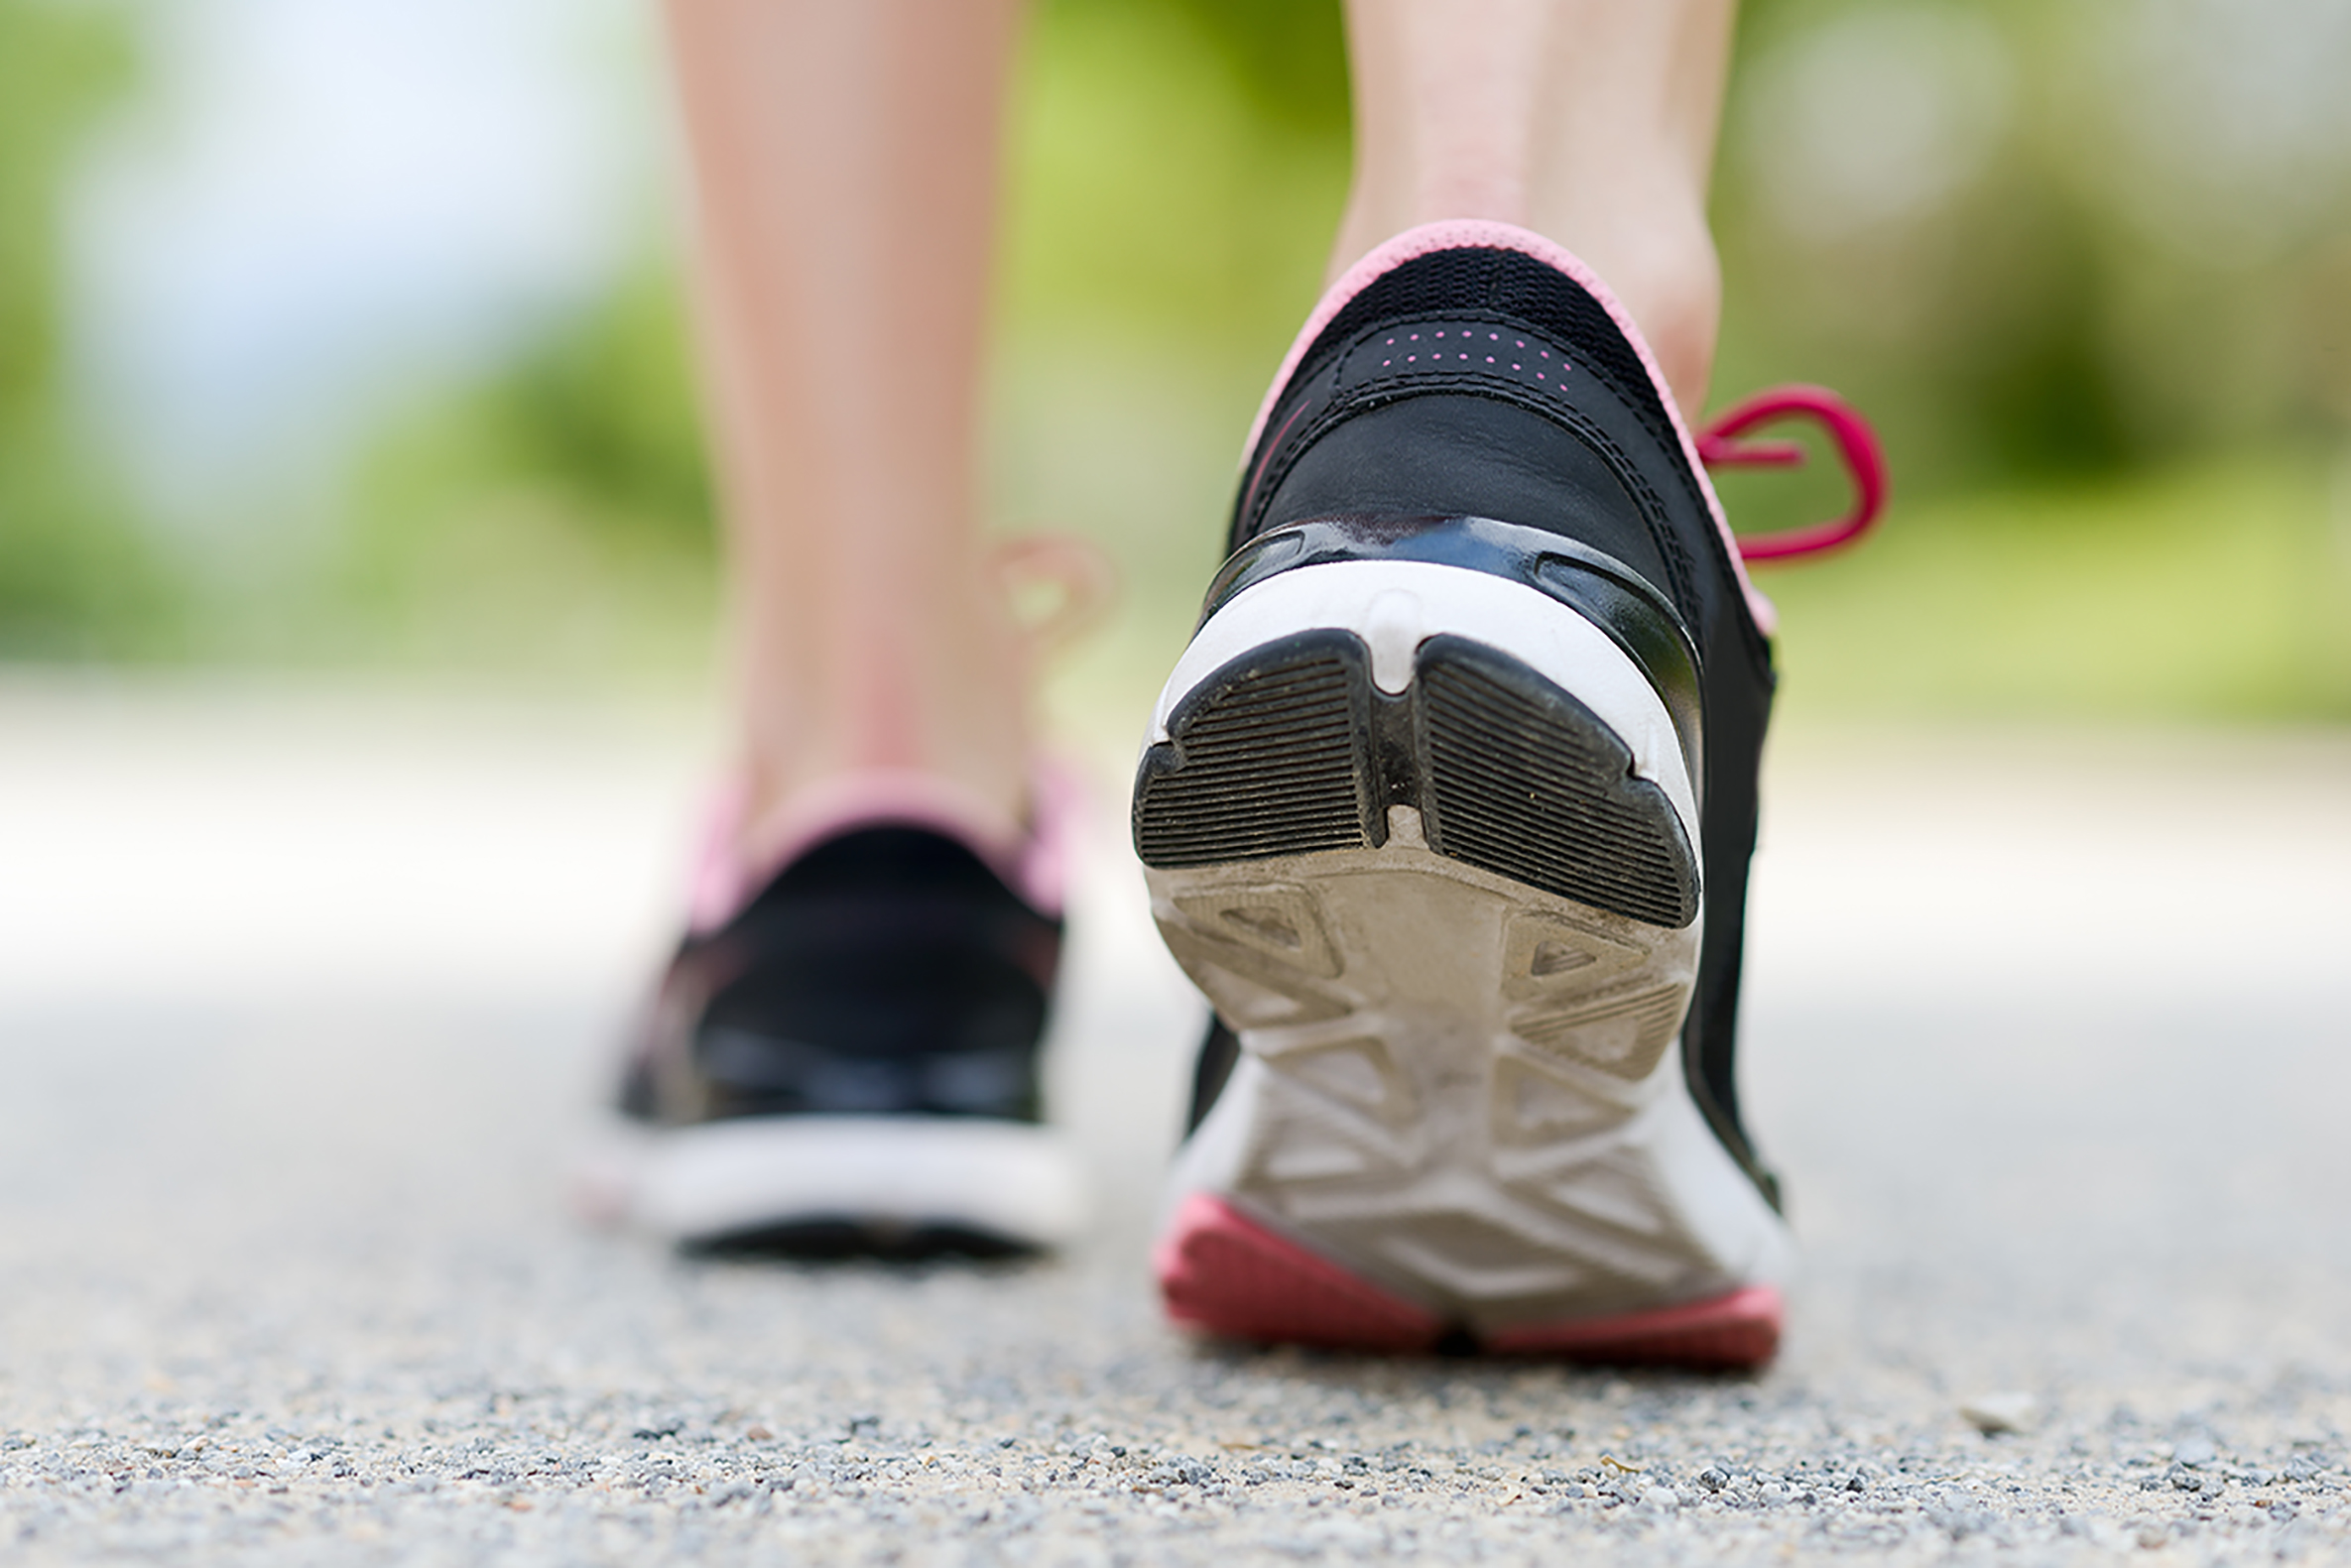 The Best Running Shoes for Plantar Fasciitis, According to a